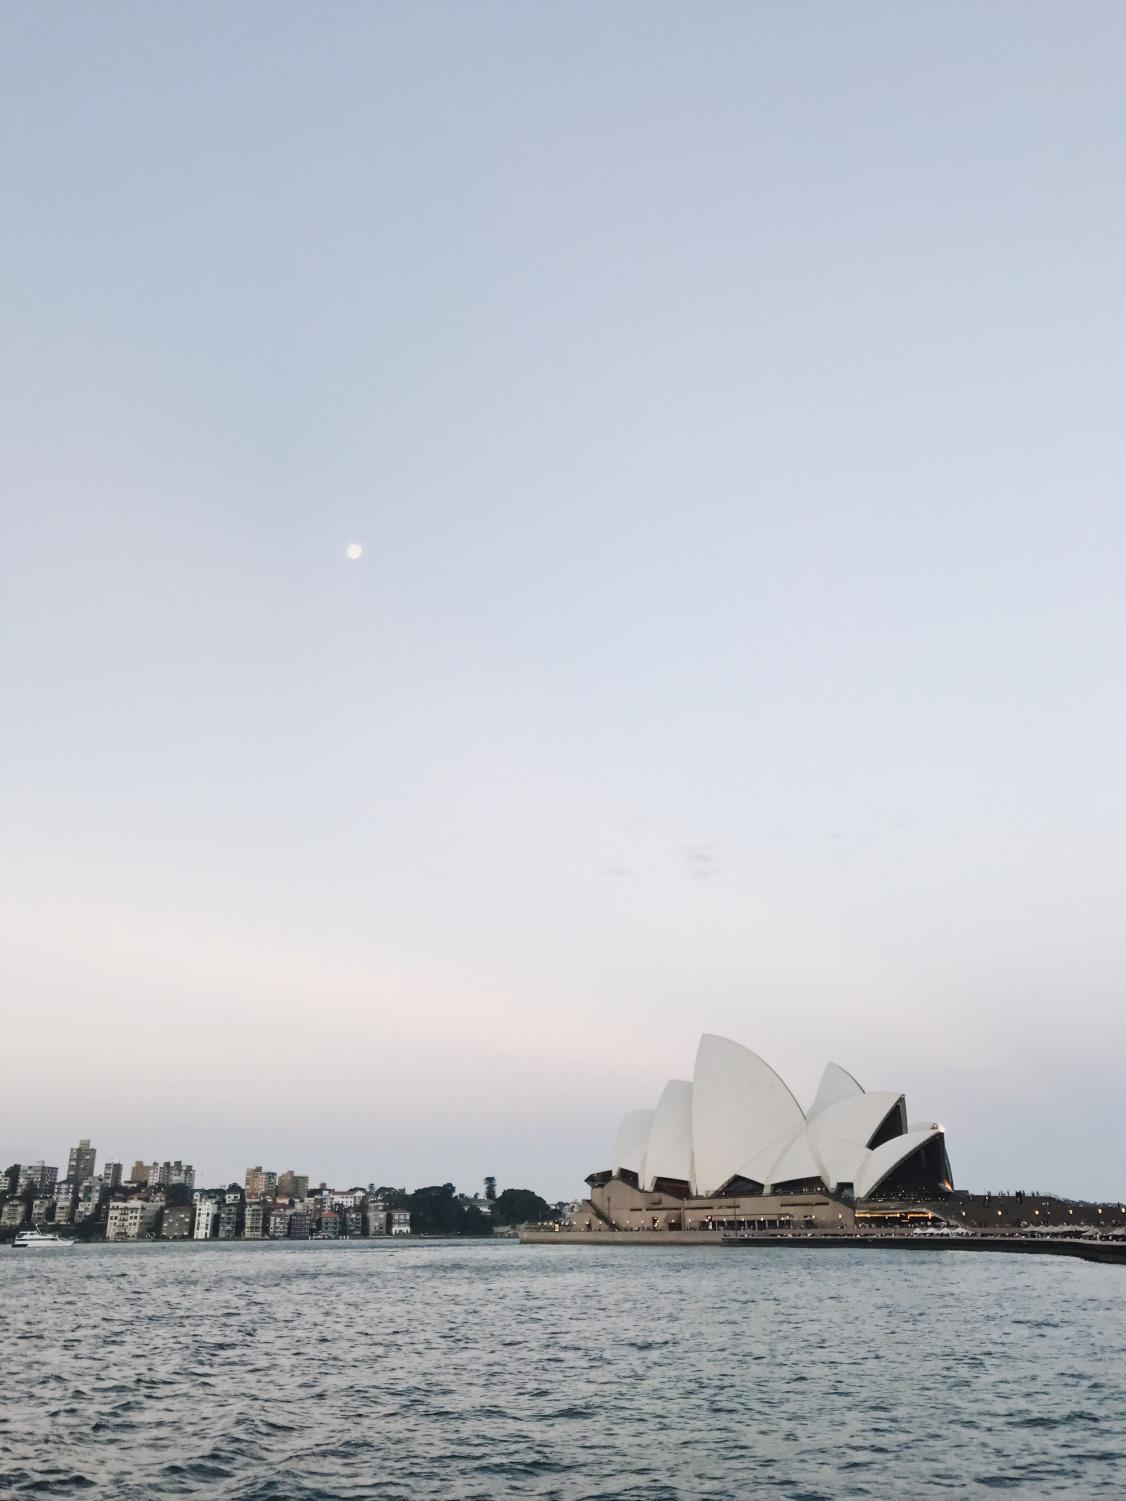 A view of the Sydney Opera House from the Manly Ferry at Circular Quay in downtown Sydney.